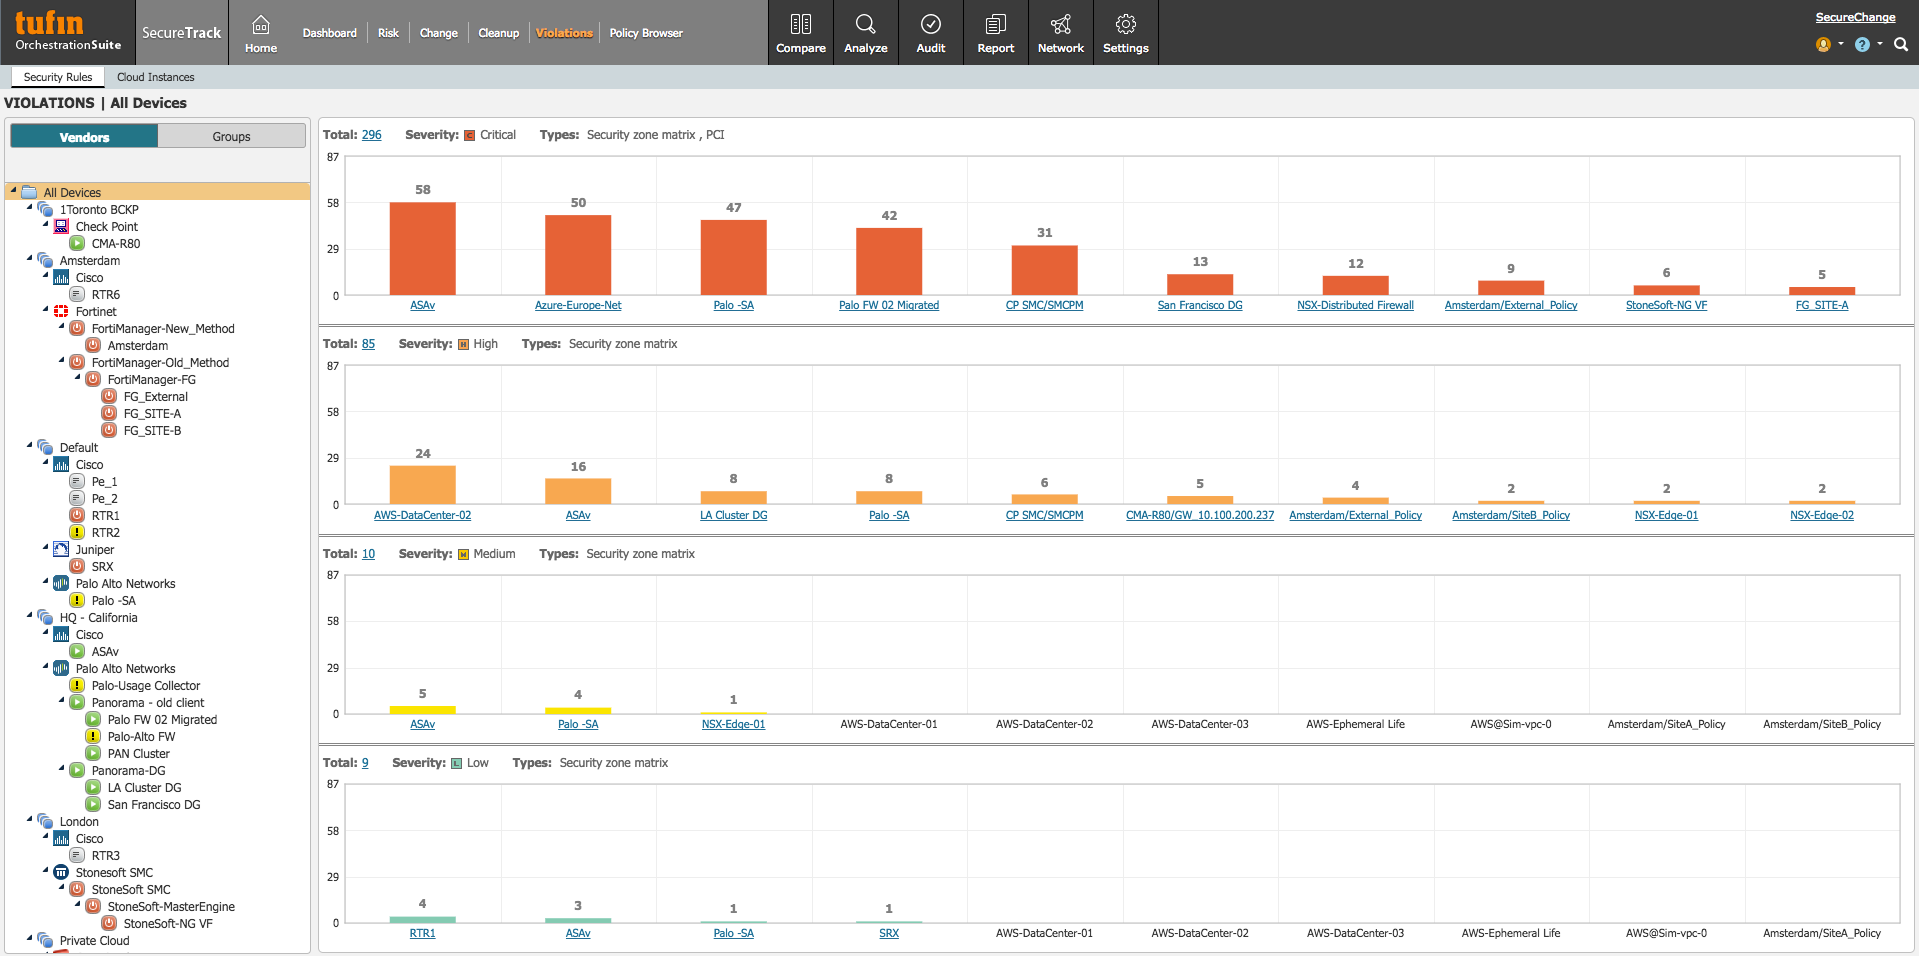 Network Security Policy Management Tufin Data Identify Violations Across Vendors And Platforms In A Single Console